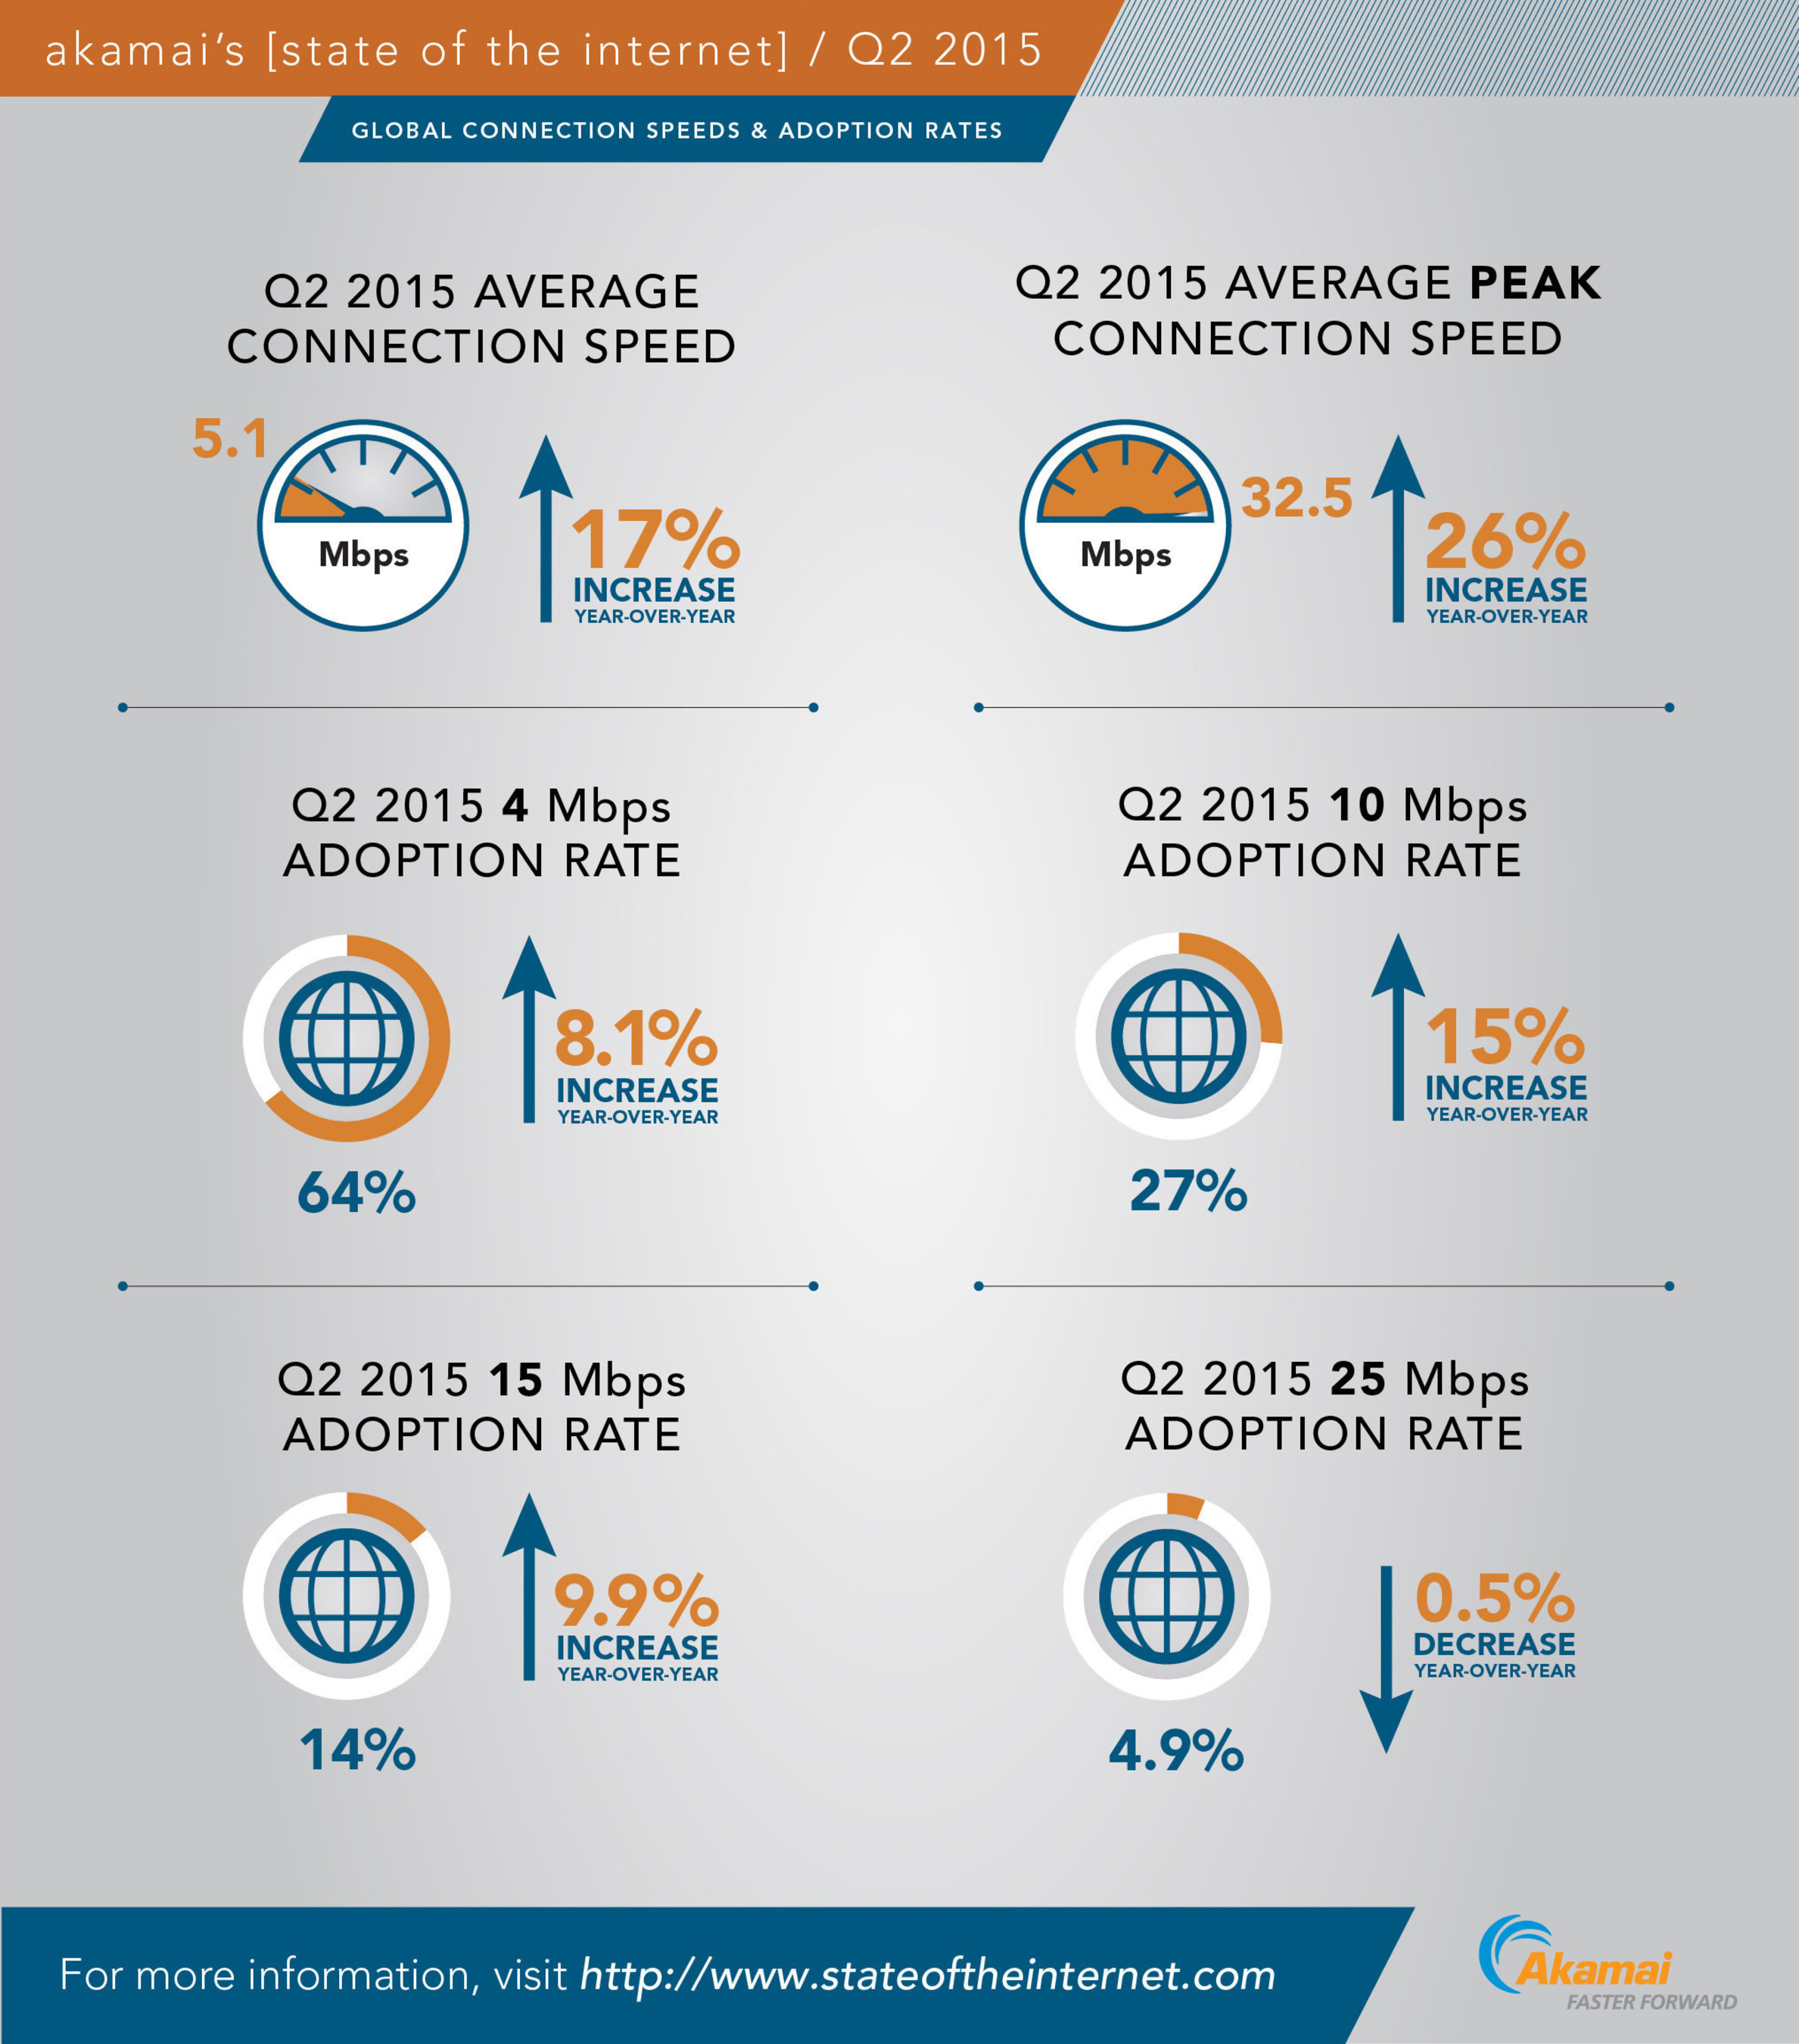 Akamai's 'Second Quarter, 2015 State of the Internet Report' includes metrics highlighting global Internet connection speeds and broadband adoption rates.